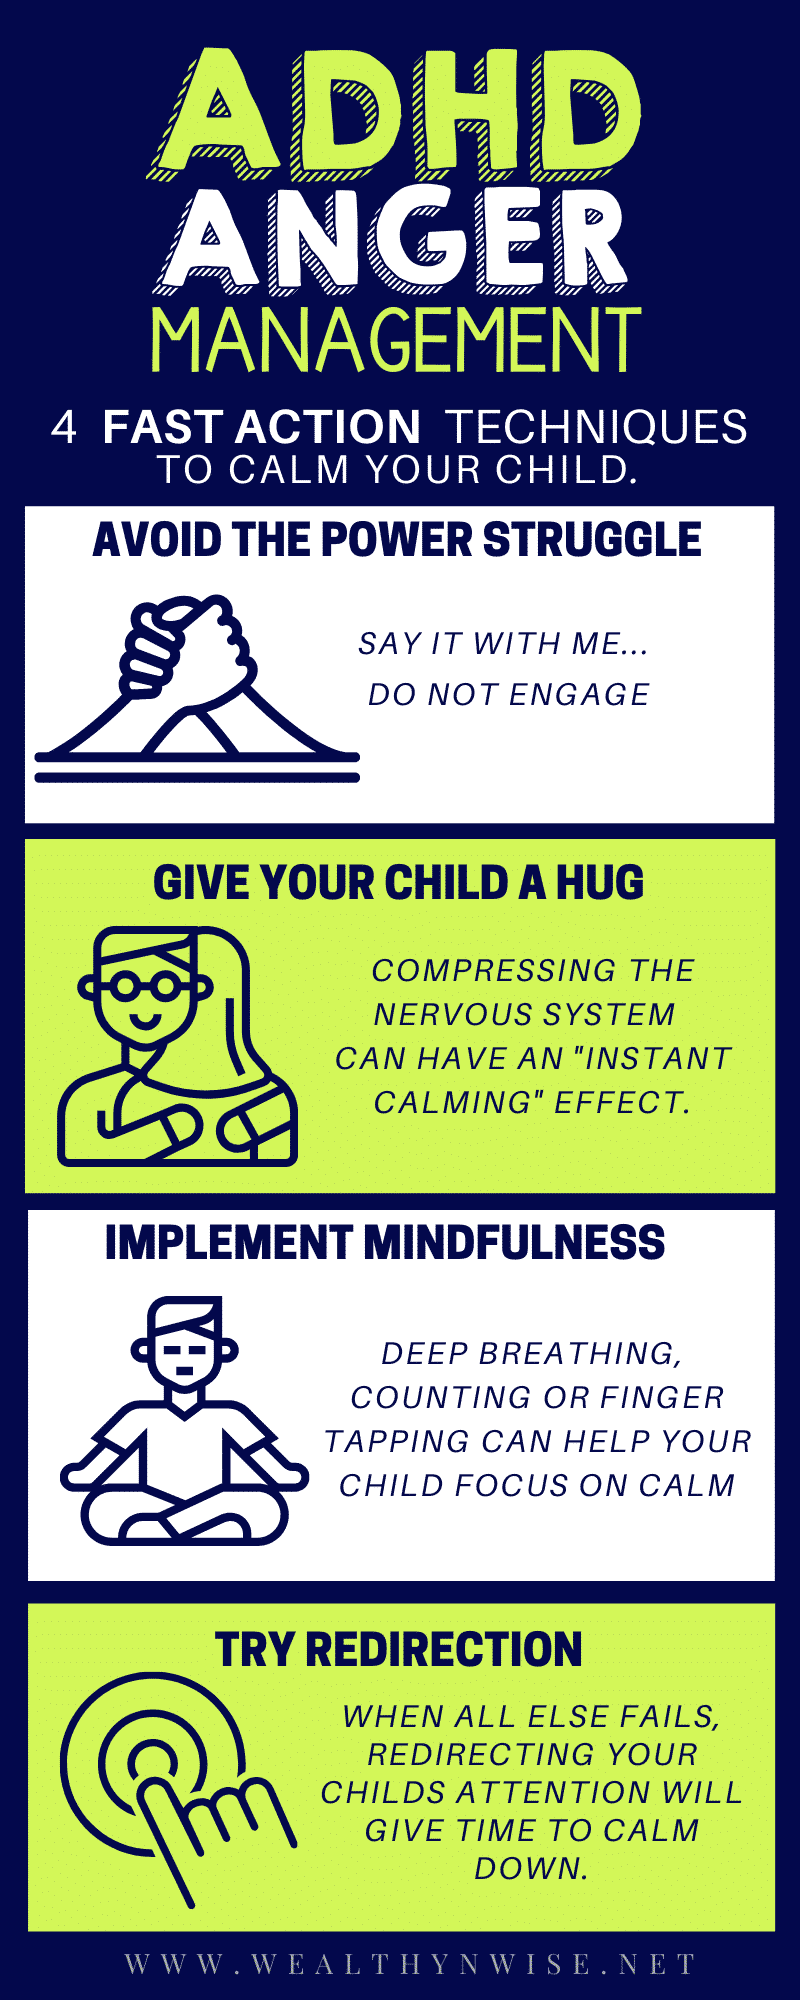 Anger Management Techniques for kids.  These Deescalation strategies can help with adhd anger issues and calm your child quickly.